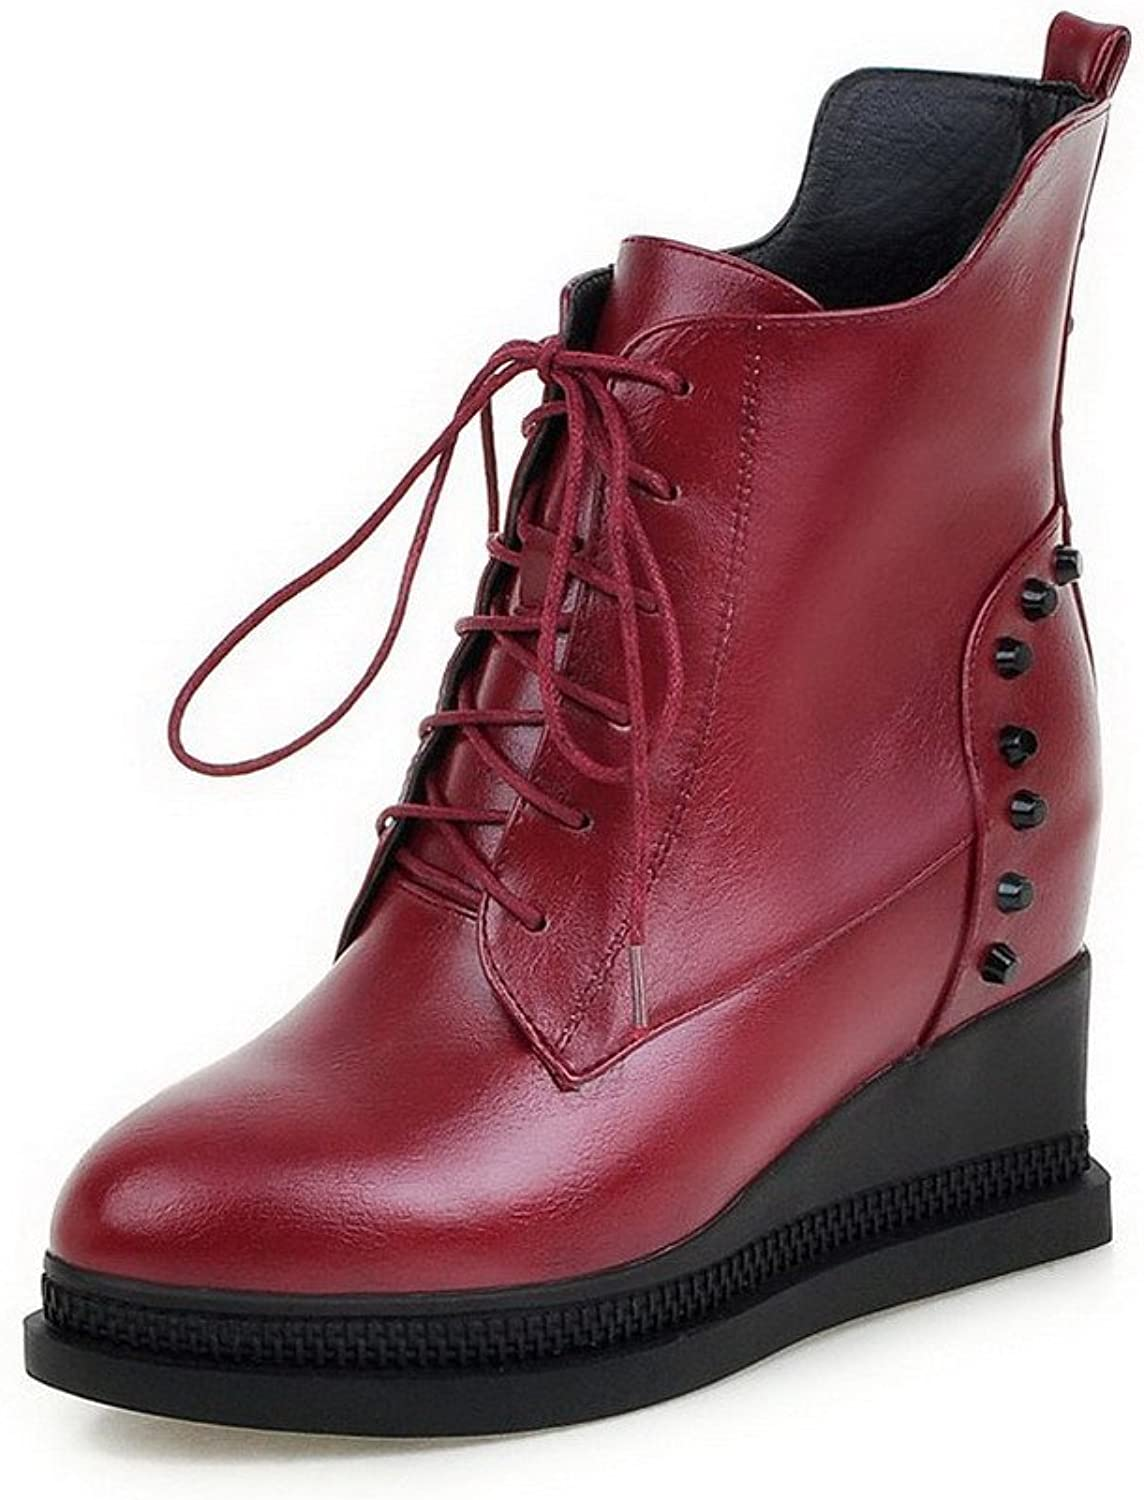 AmoonyFashion Women's Round Closed Toe Low Top High Heels Solid Pu Boots